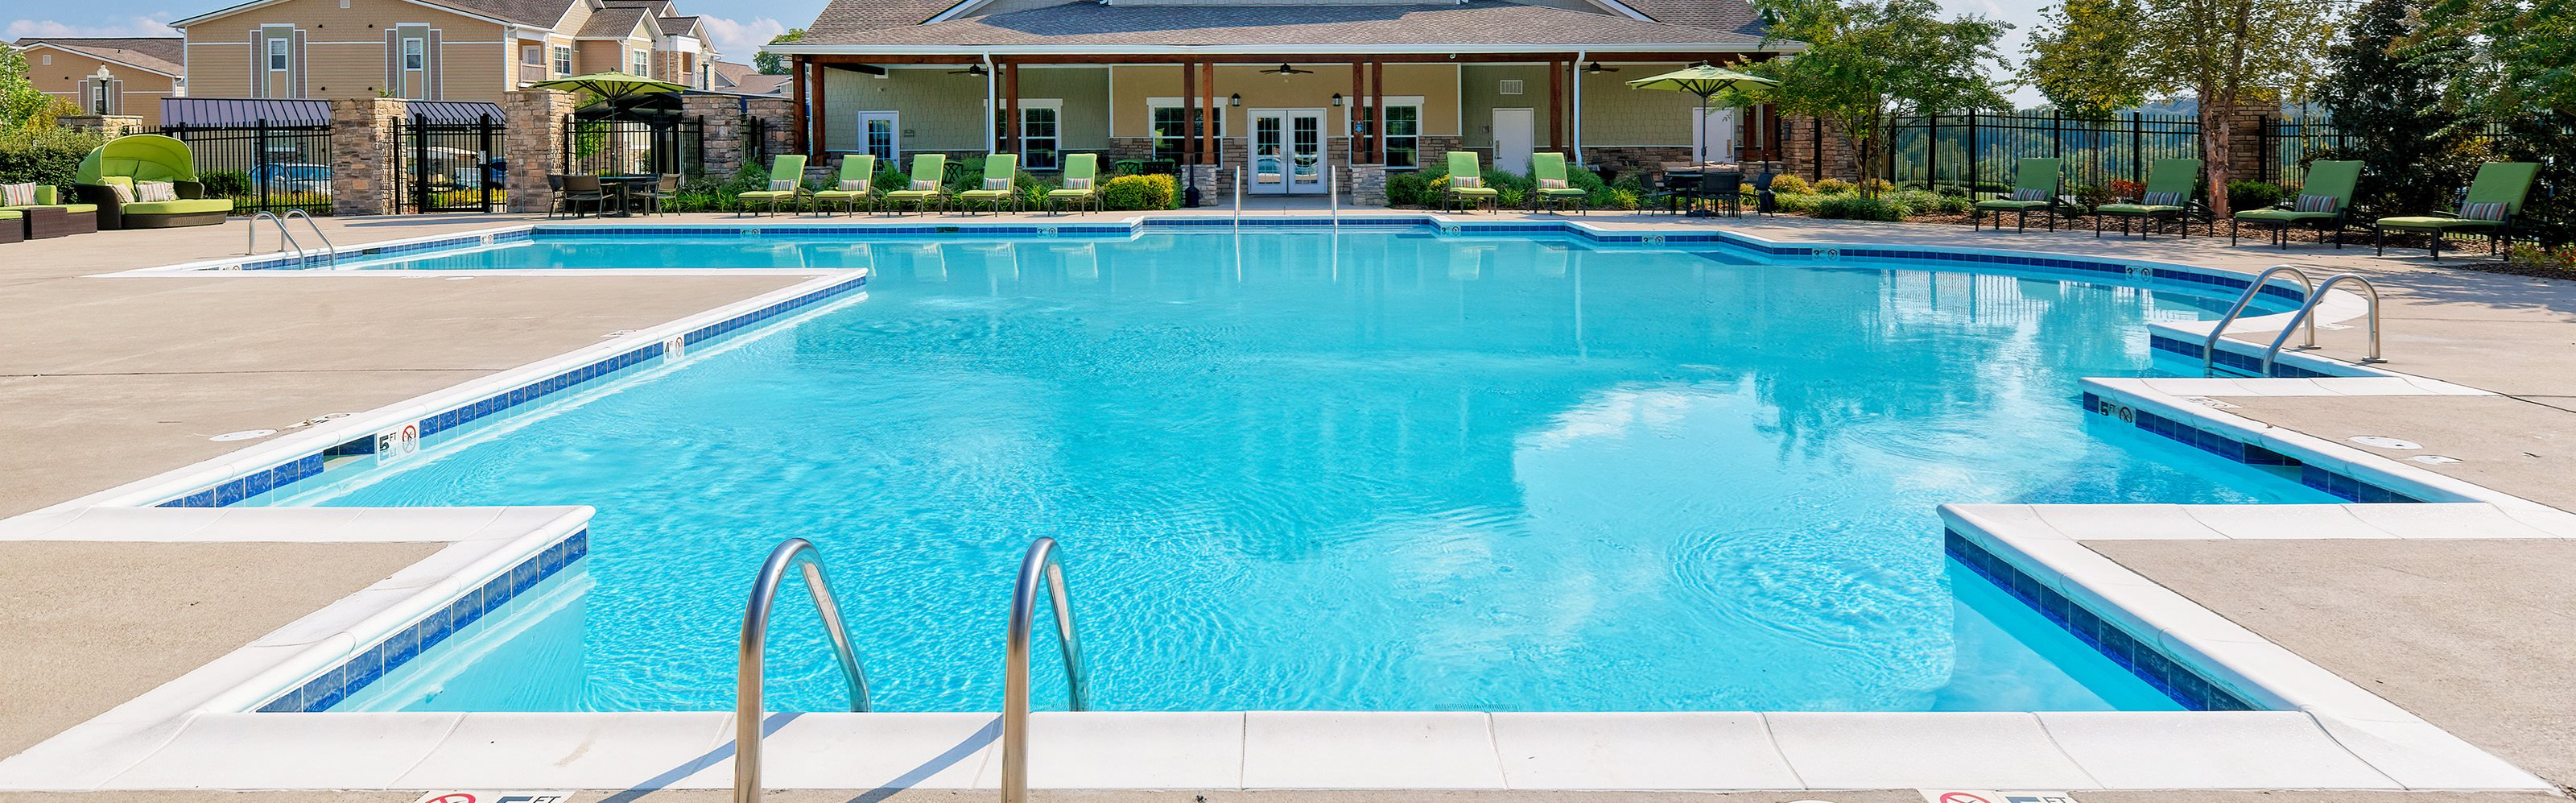 Glenbrook Apartments pool area